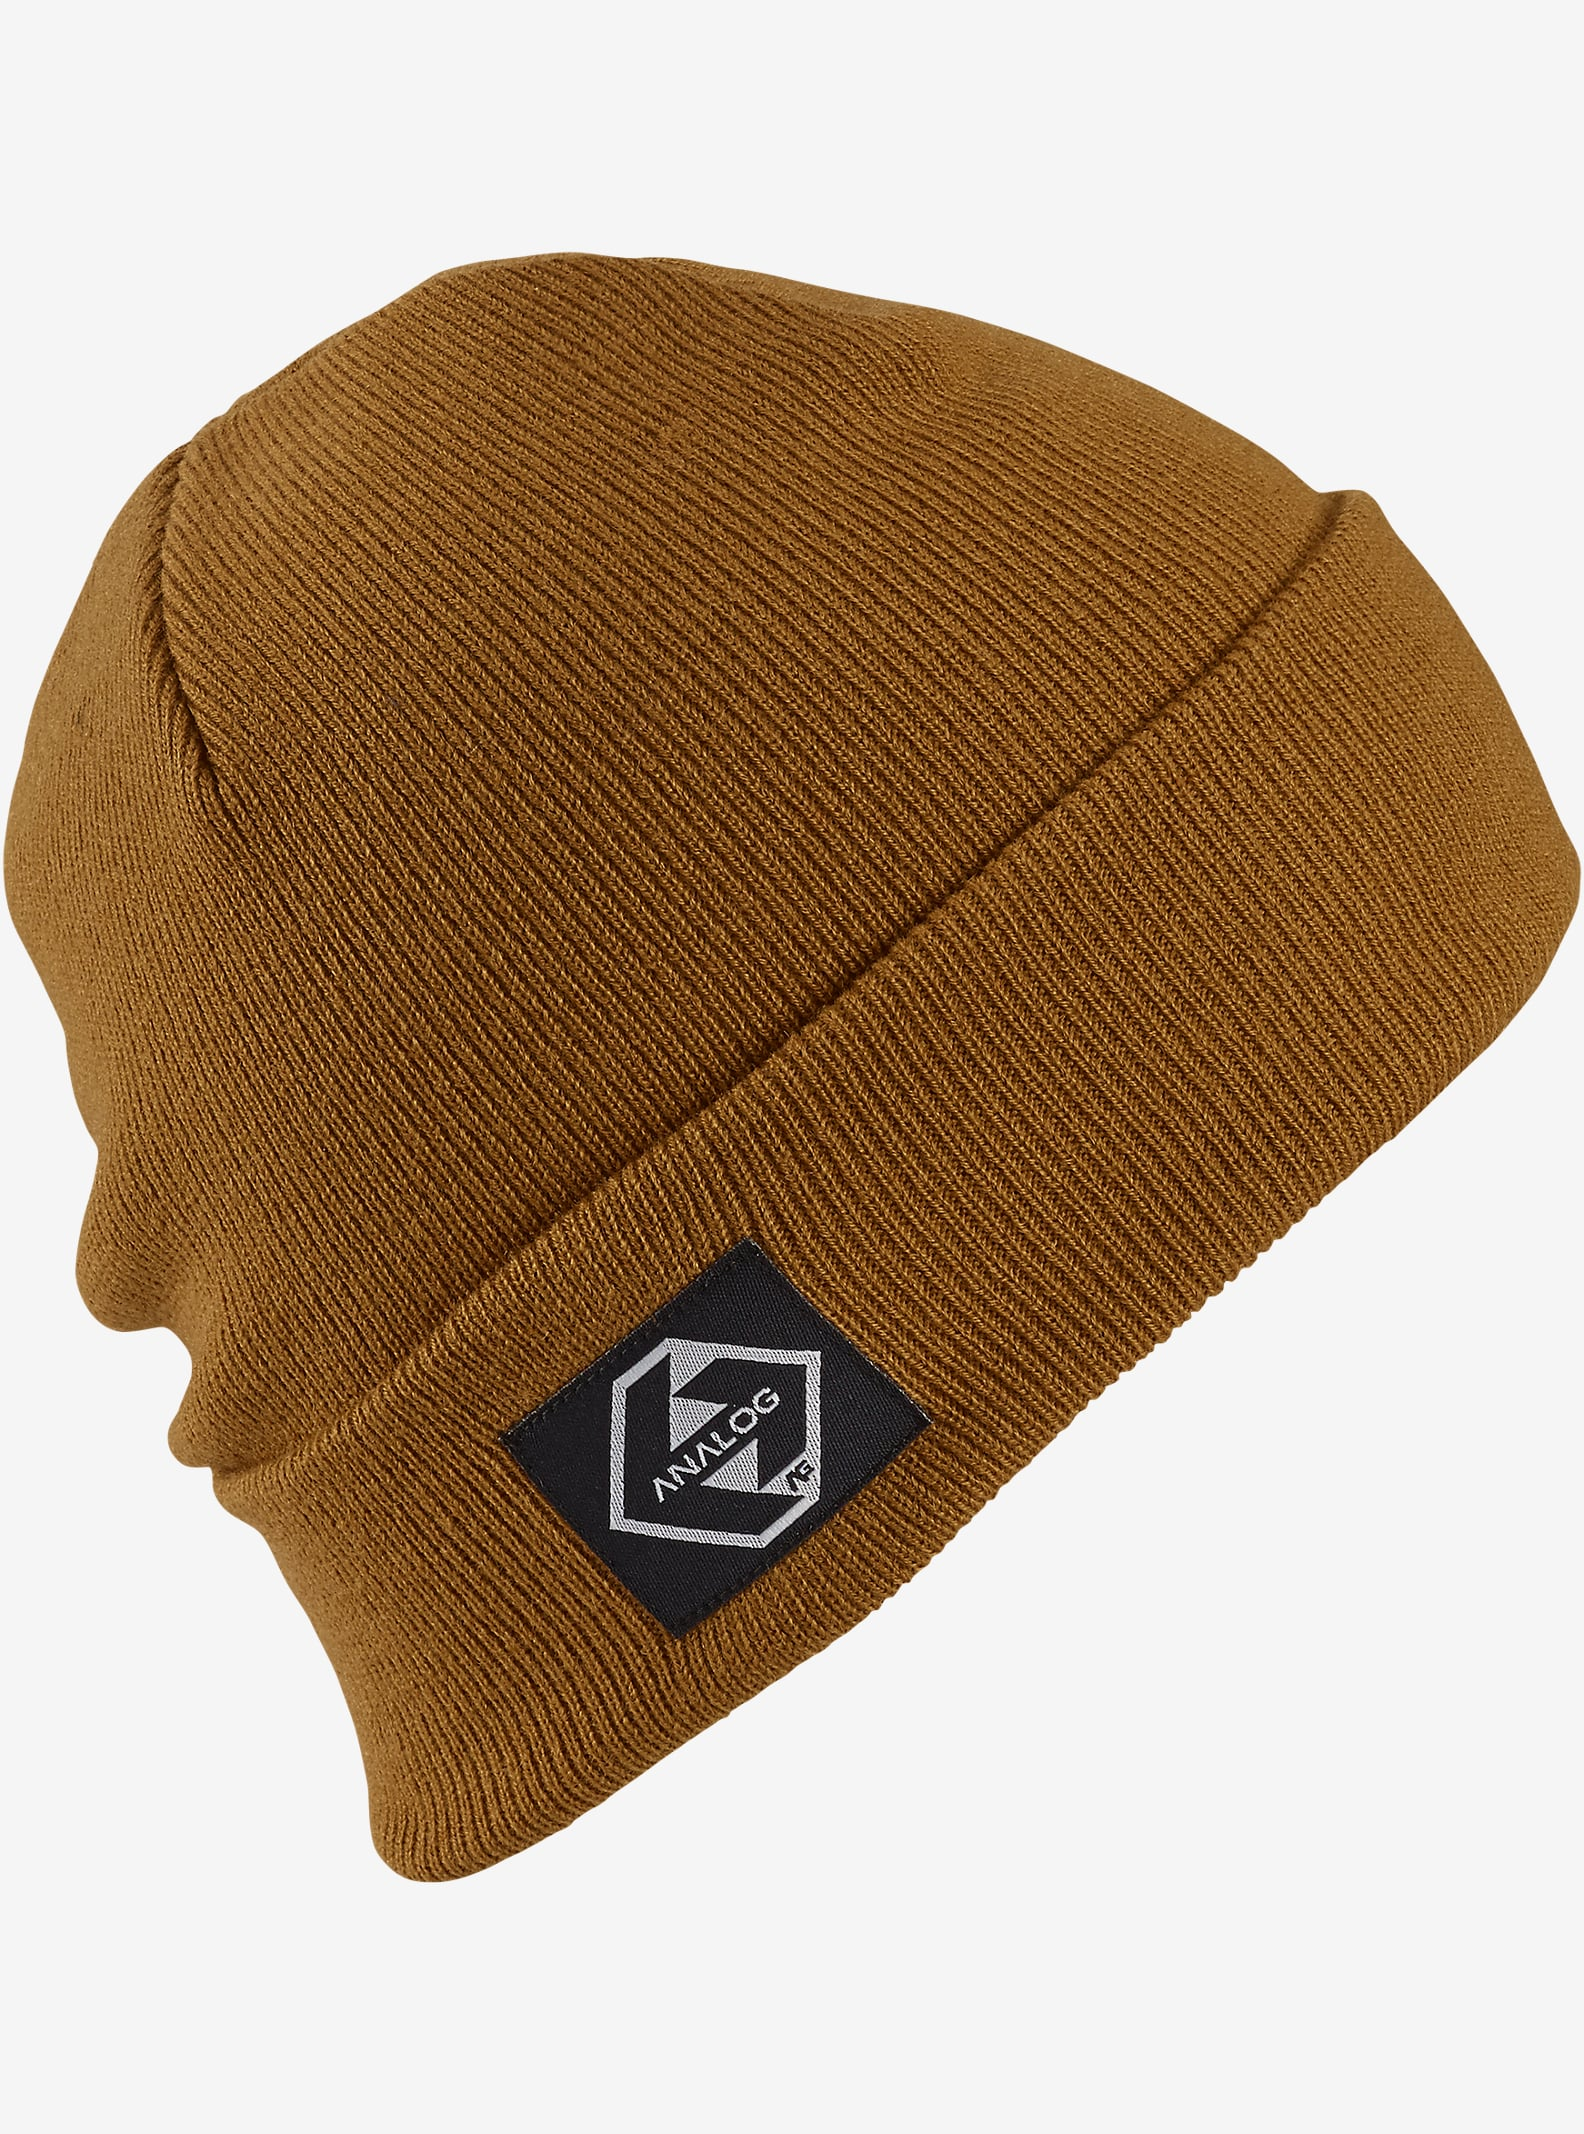 Analog Service Beanie shown in Copper